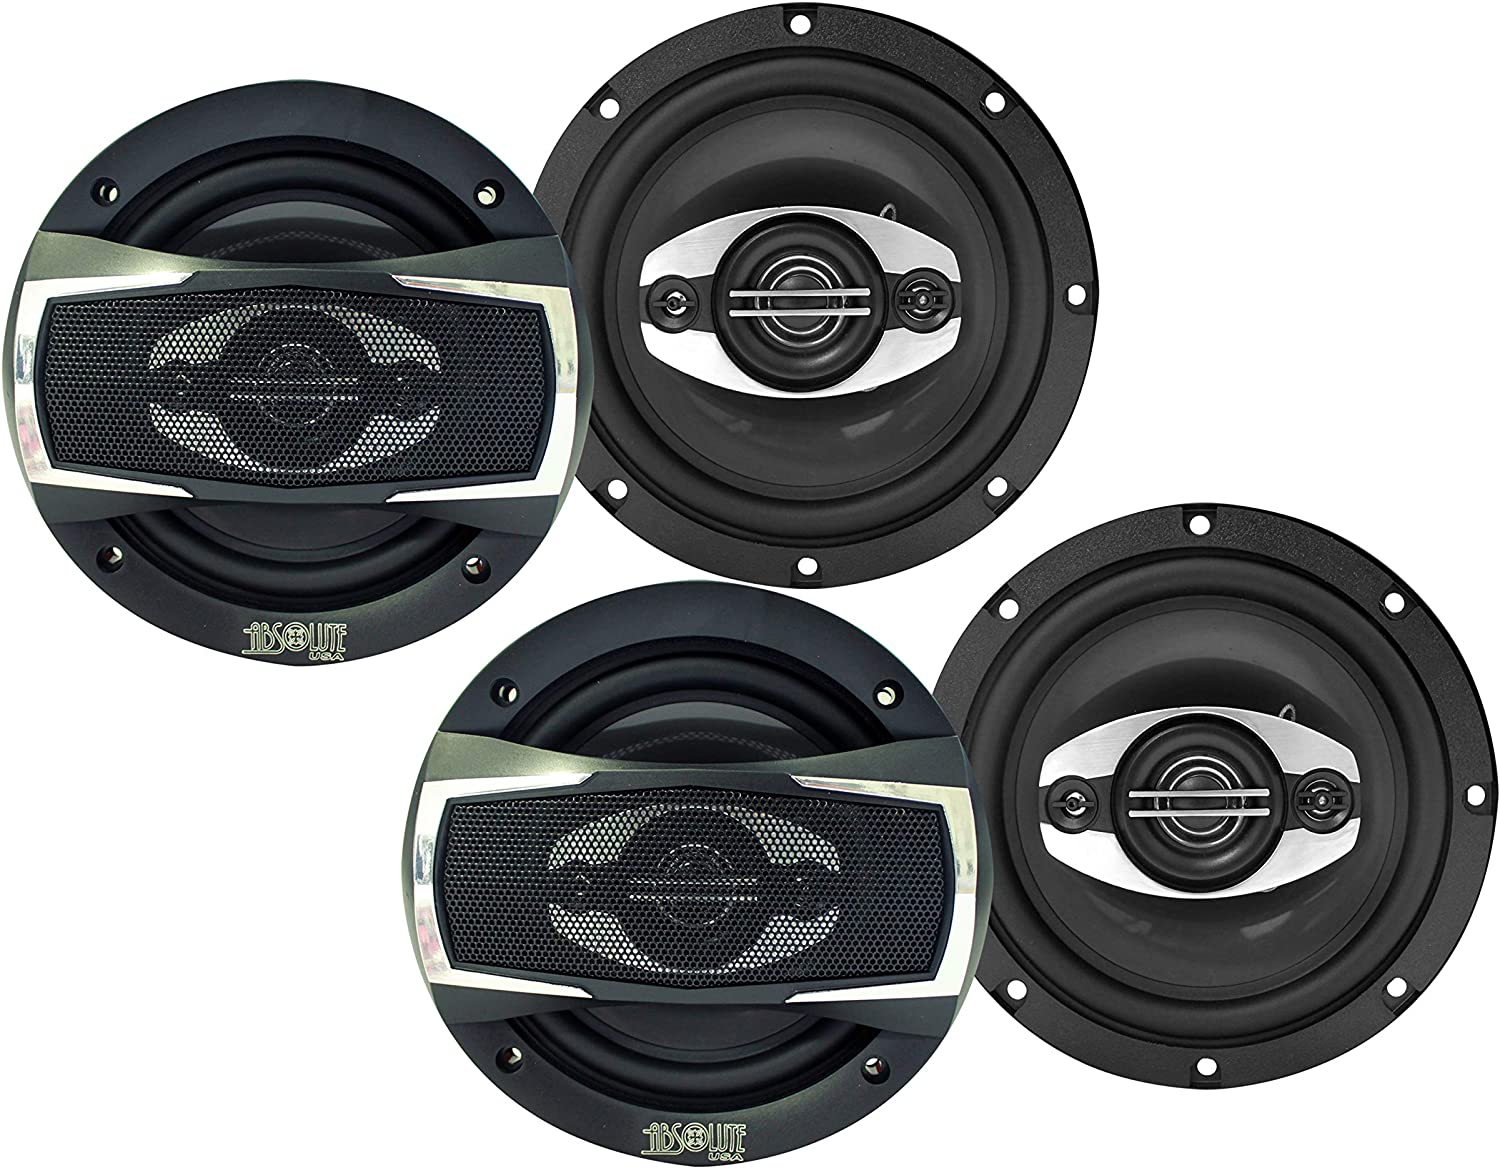 Absolute USA BLS6503-HSB524 2 Set of 6.5 Speakers Compatible with Honda Civic 2006-2011 Factory Speaker Replacement